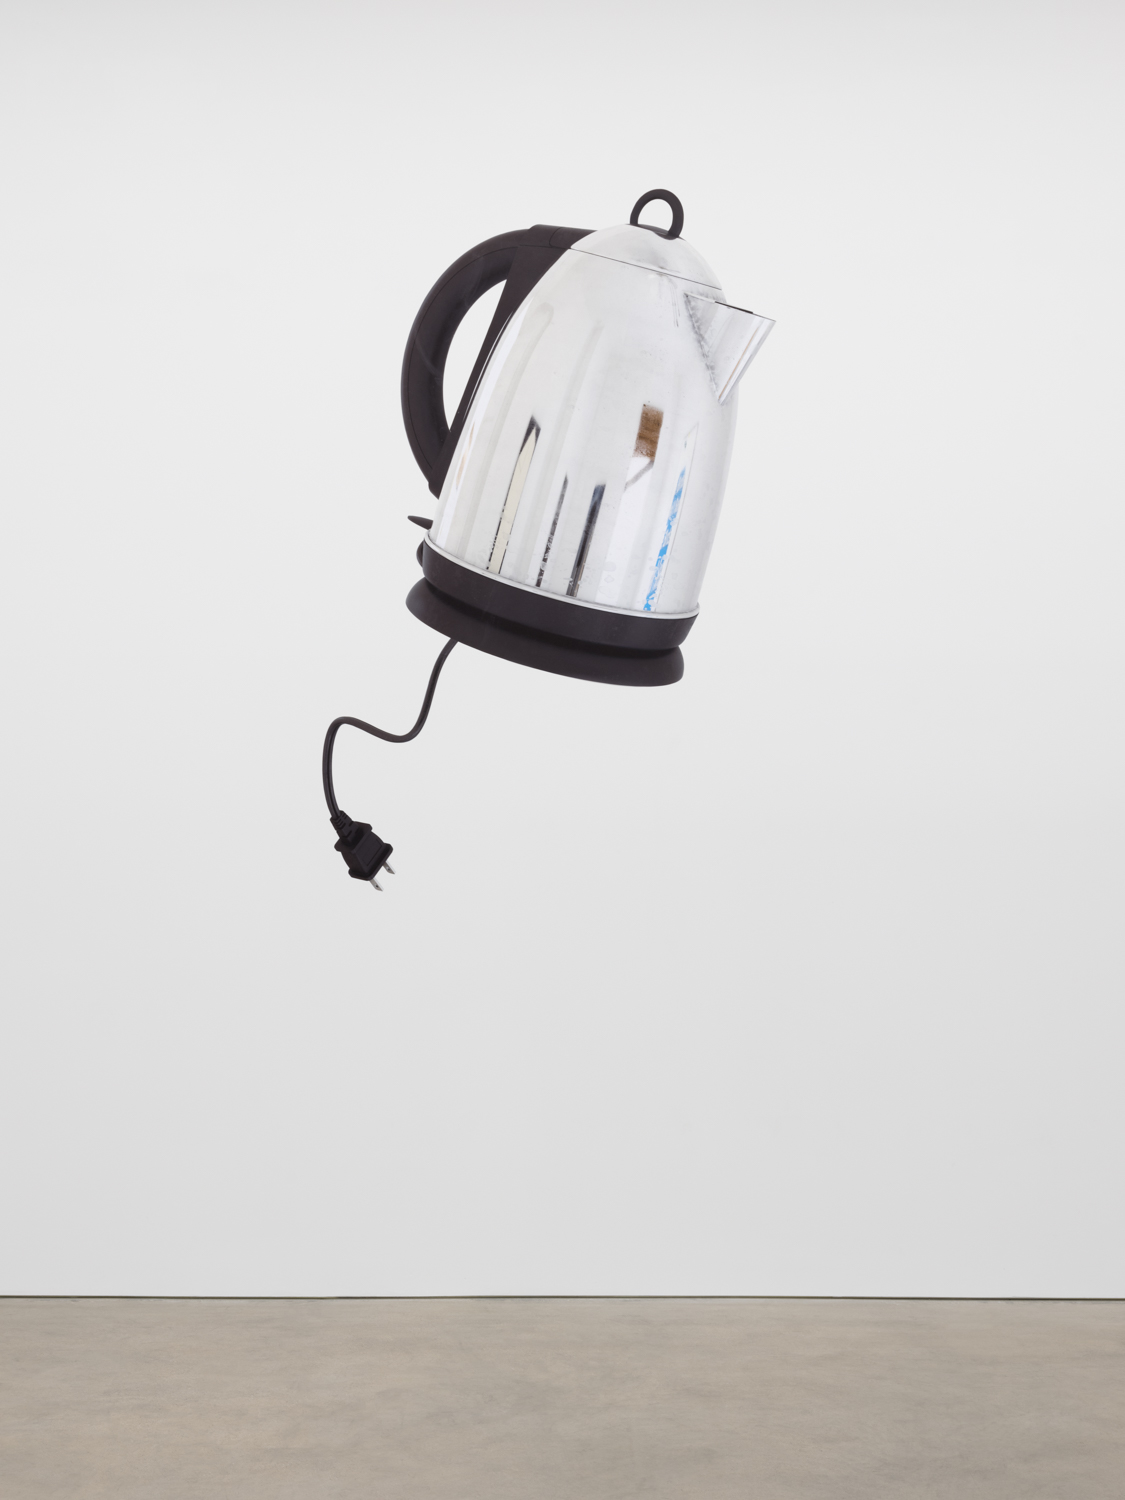 Asha Schechter  Electric Kettle with reflection of paintings in bedroom modeled and rendered by Csaba Kiss  2017 Inkjet print on adhesive vinyl 94h x 44w in ASch001